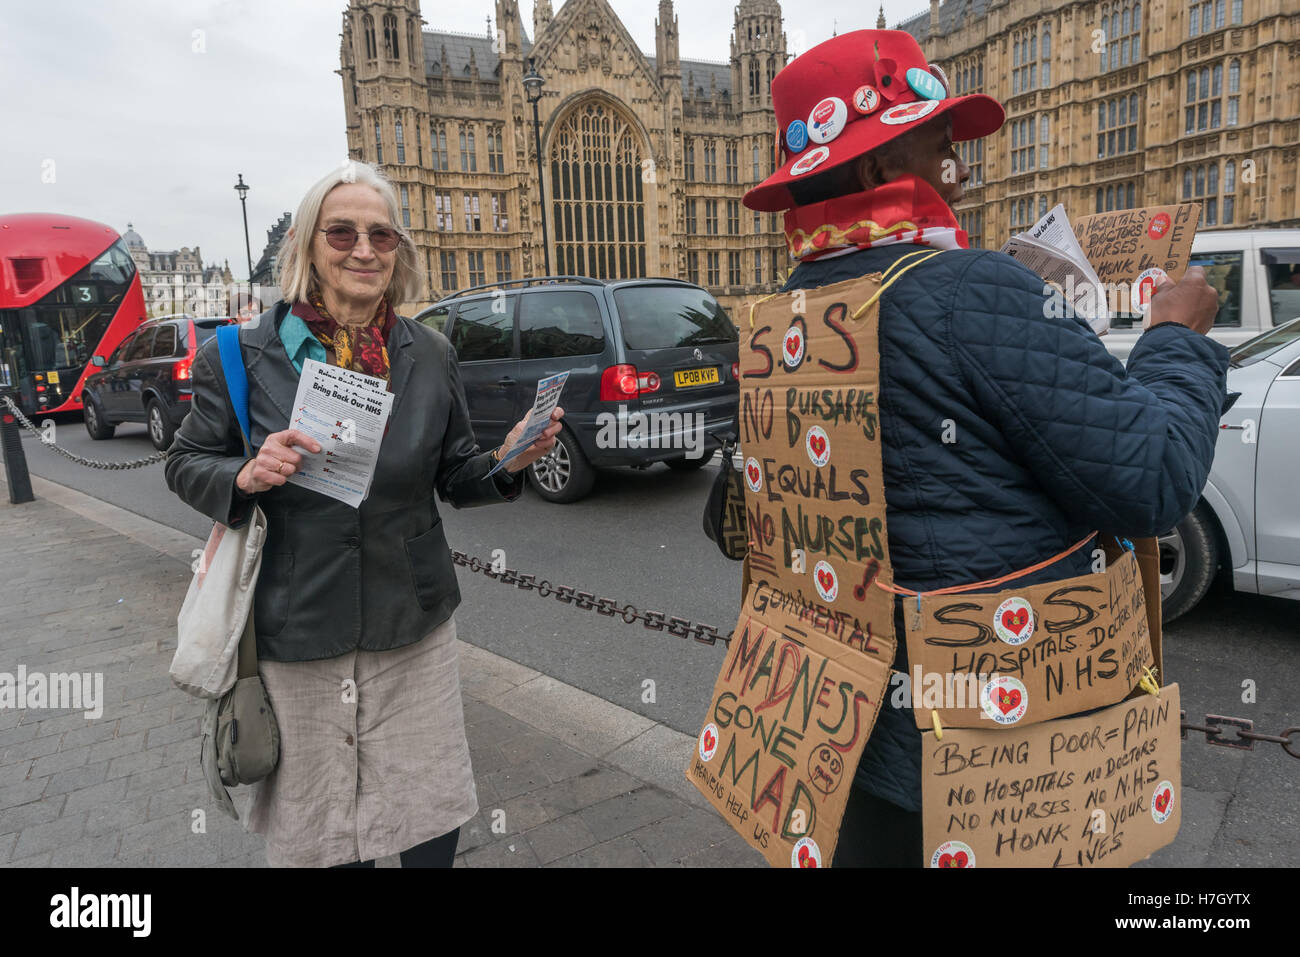 London, UK. 4 November 2016. A campaigner from Save Our Hospitals stands by the road with posters around her body - Stock Image